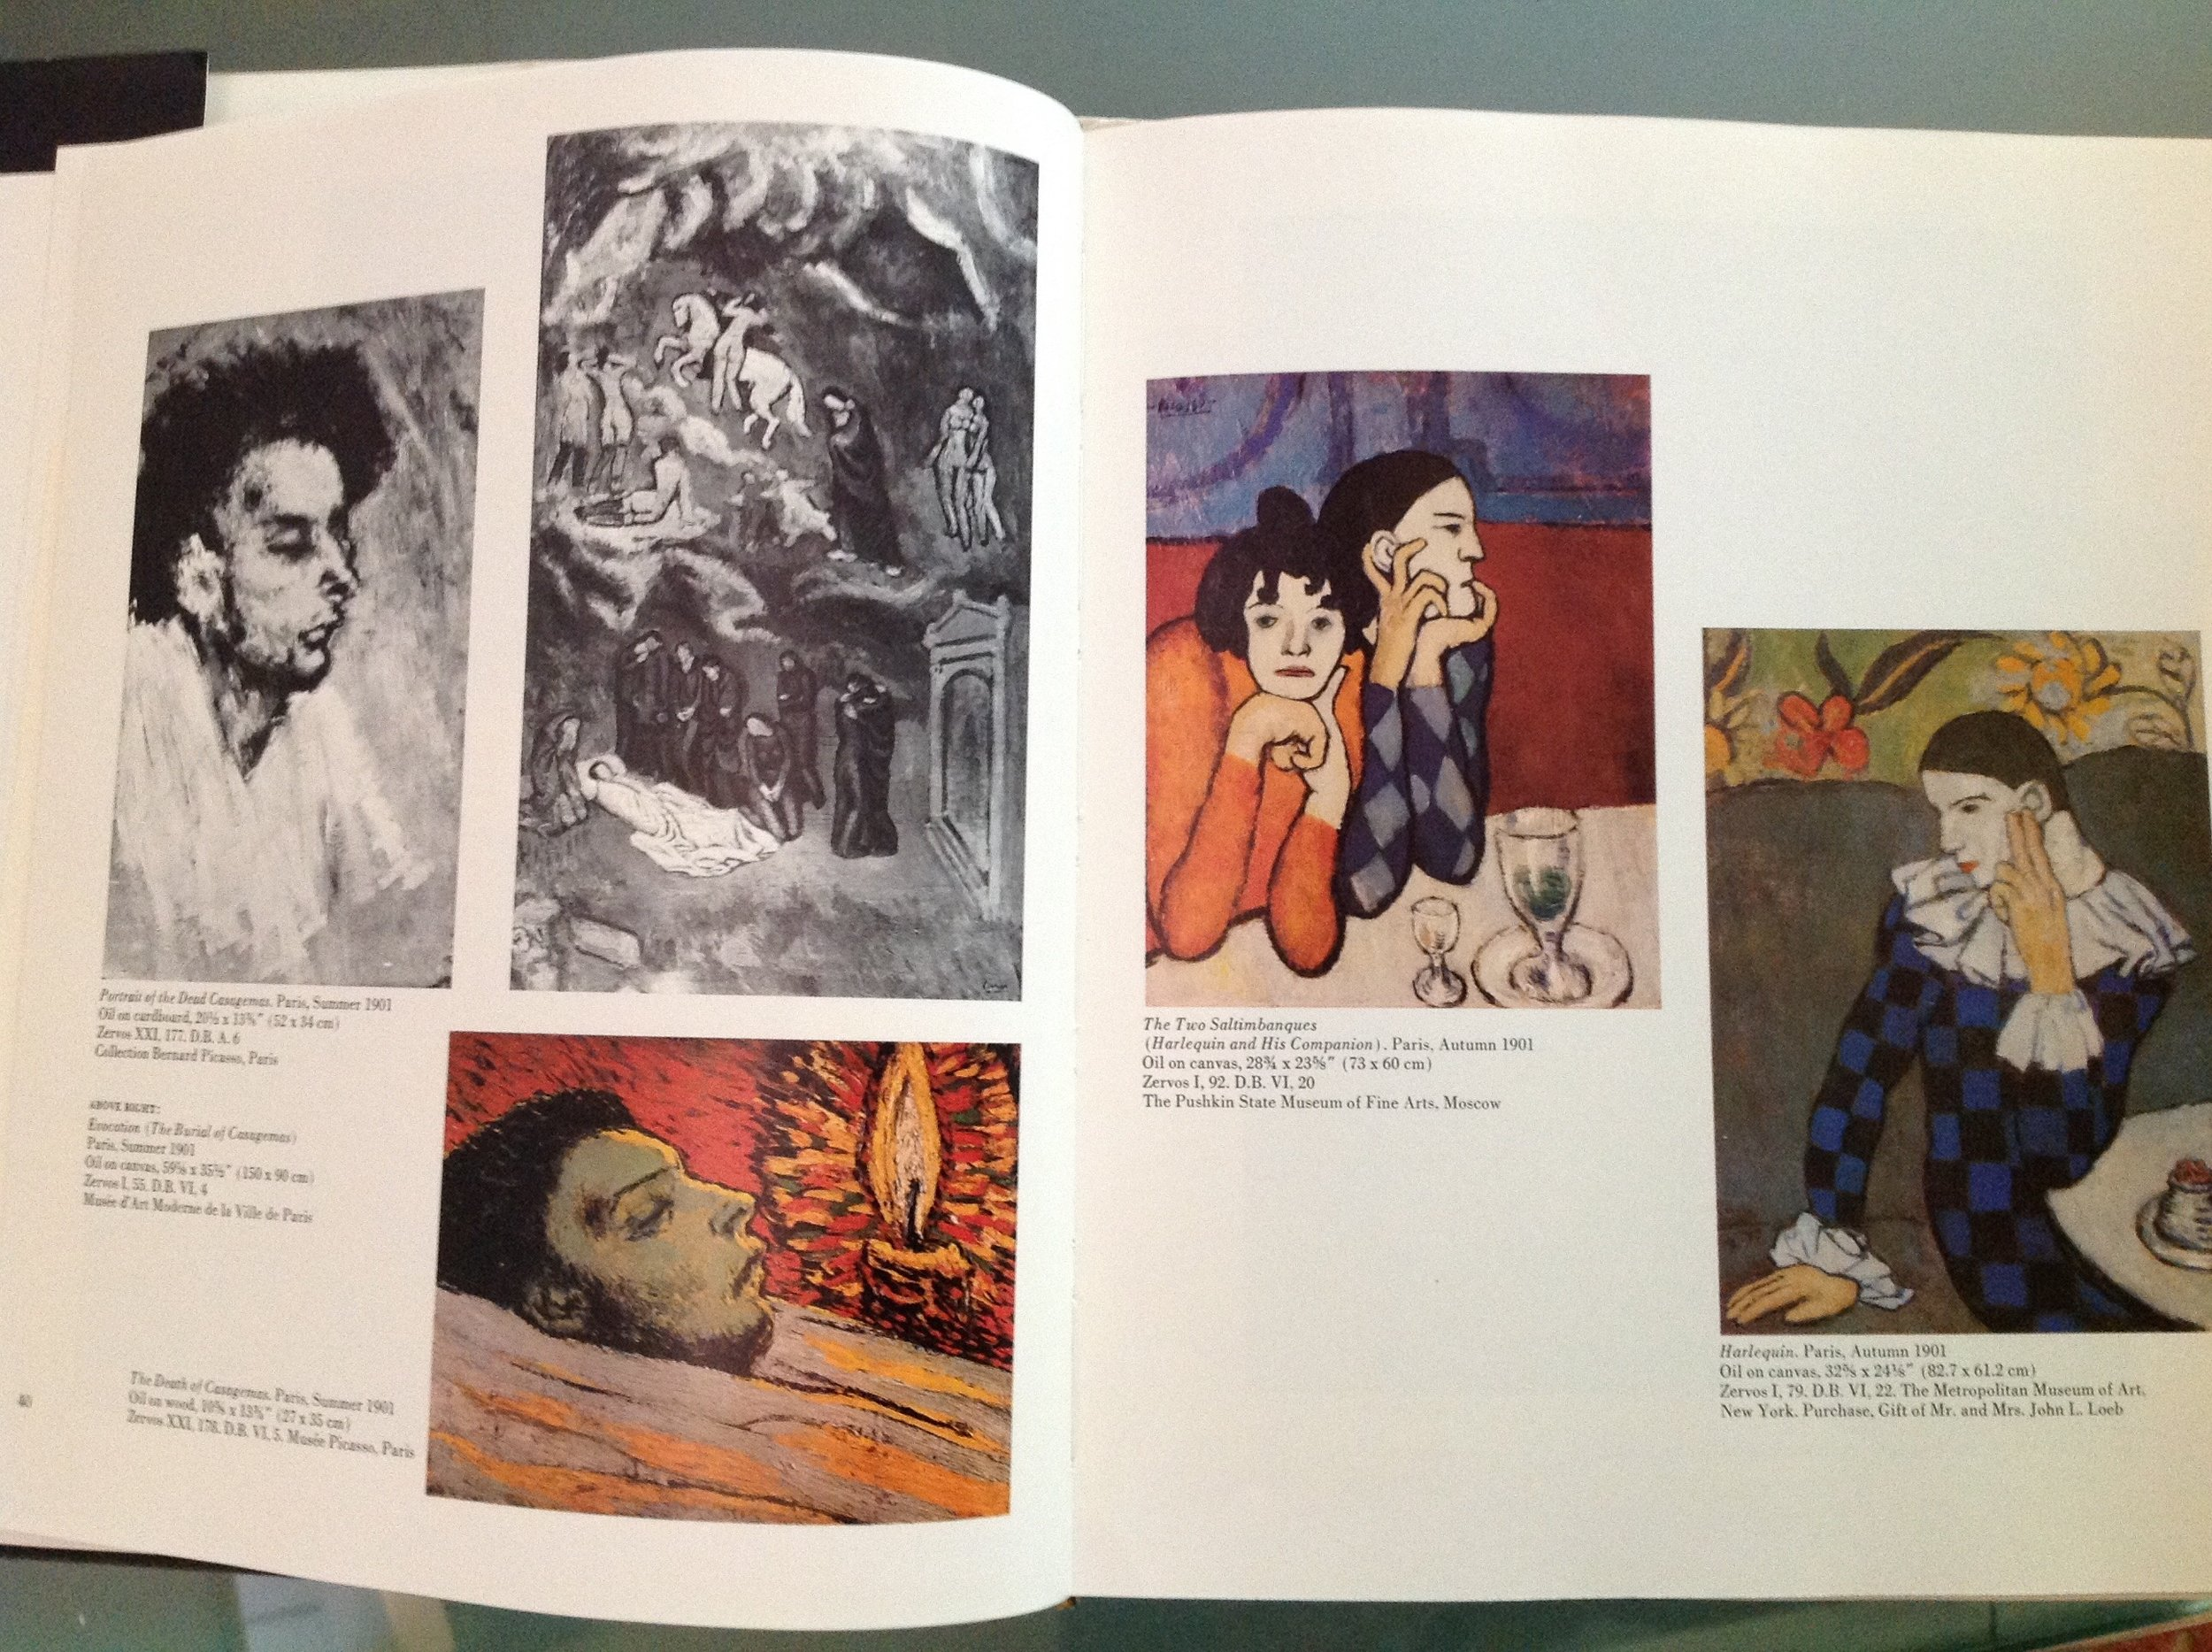 Notice how Picasso began painting Harlequins as a reaction to the death of his friend.  Portrait of Dead Casagemas